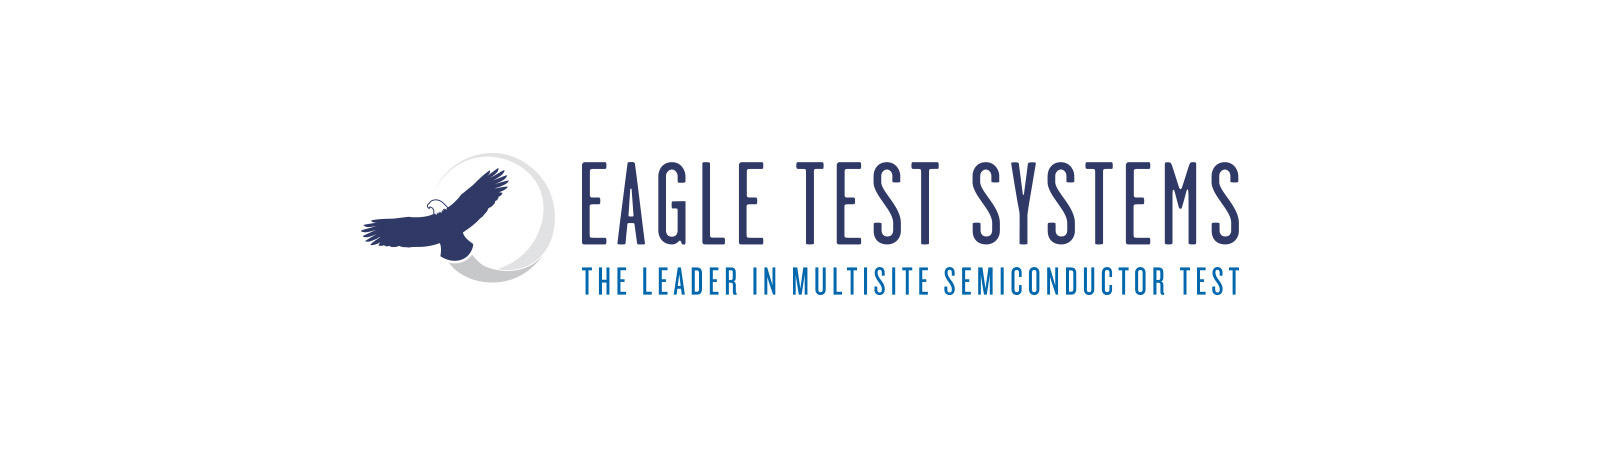 Eagle Test Systems logo